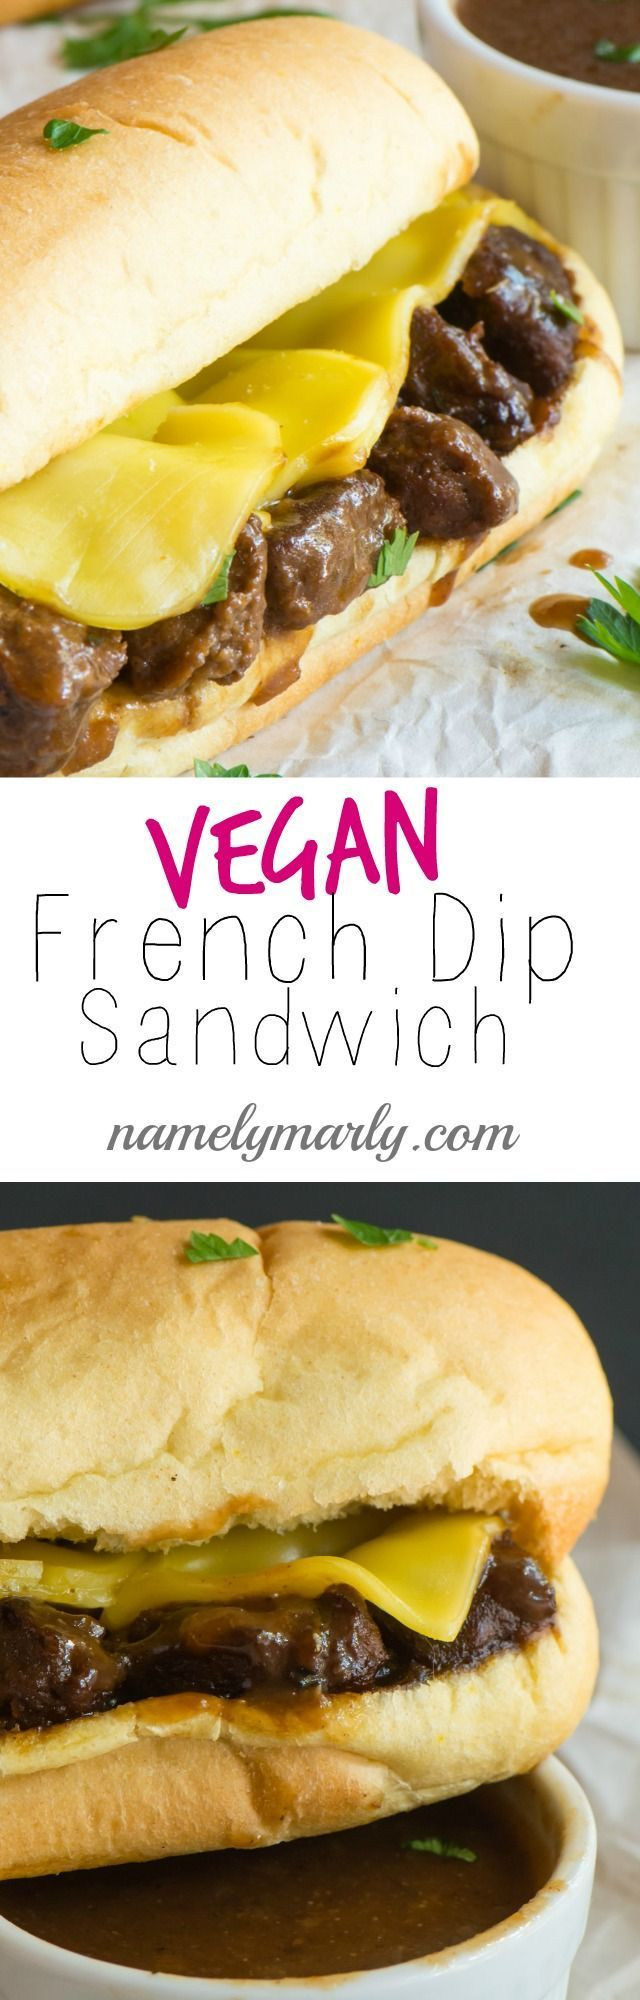 The best Vegan French Dip Sandwich because it's so easy to make and a perfect weeknight meal. This savory sandwich is vegan, easy, and delicious!